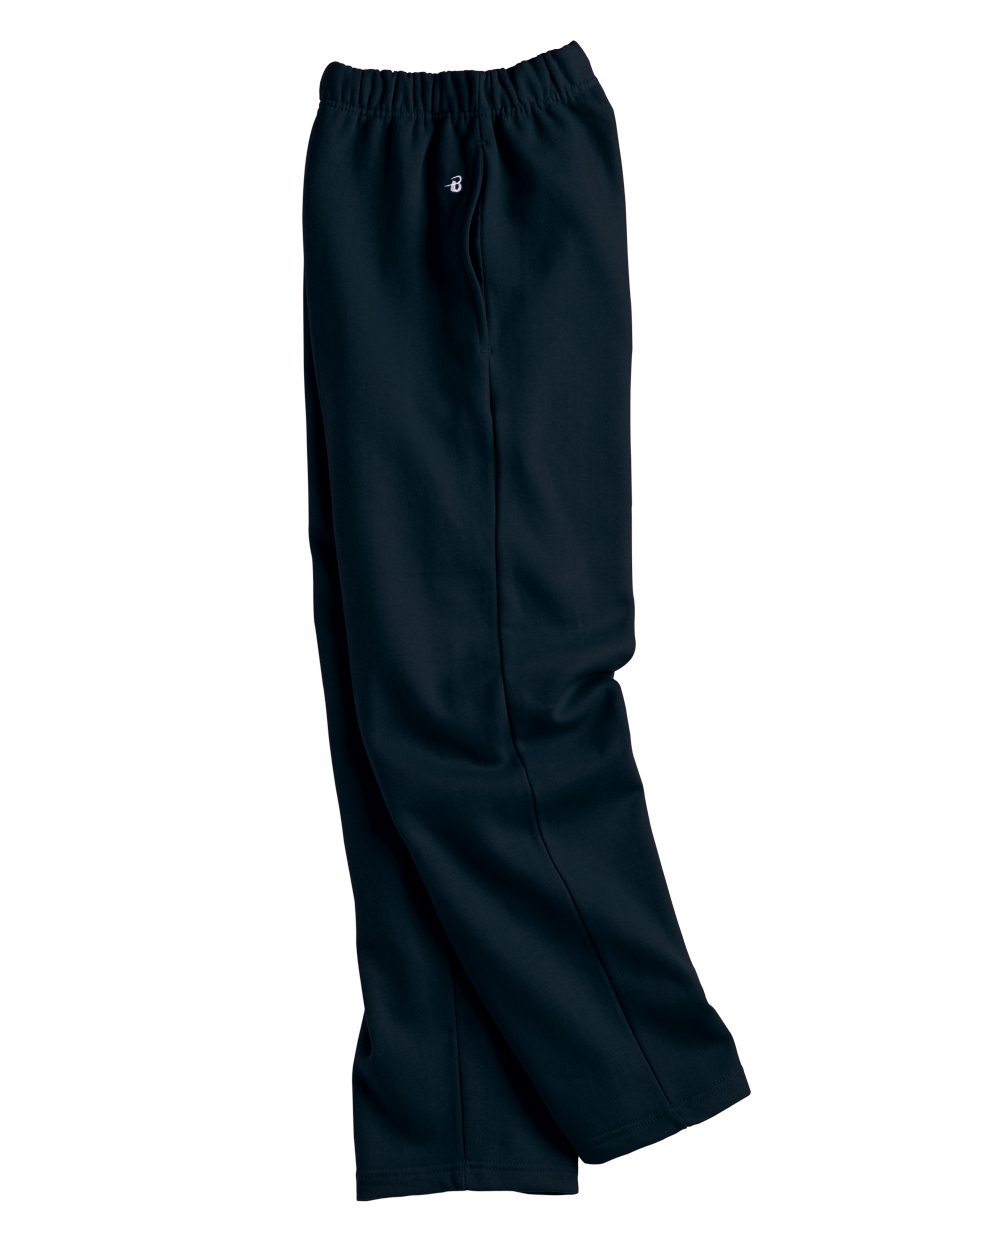 Badger Sport 1277 Open Bottom Sweatpants